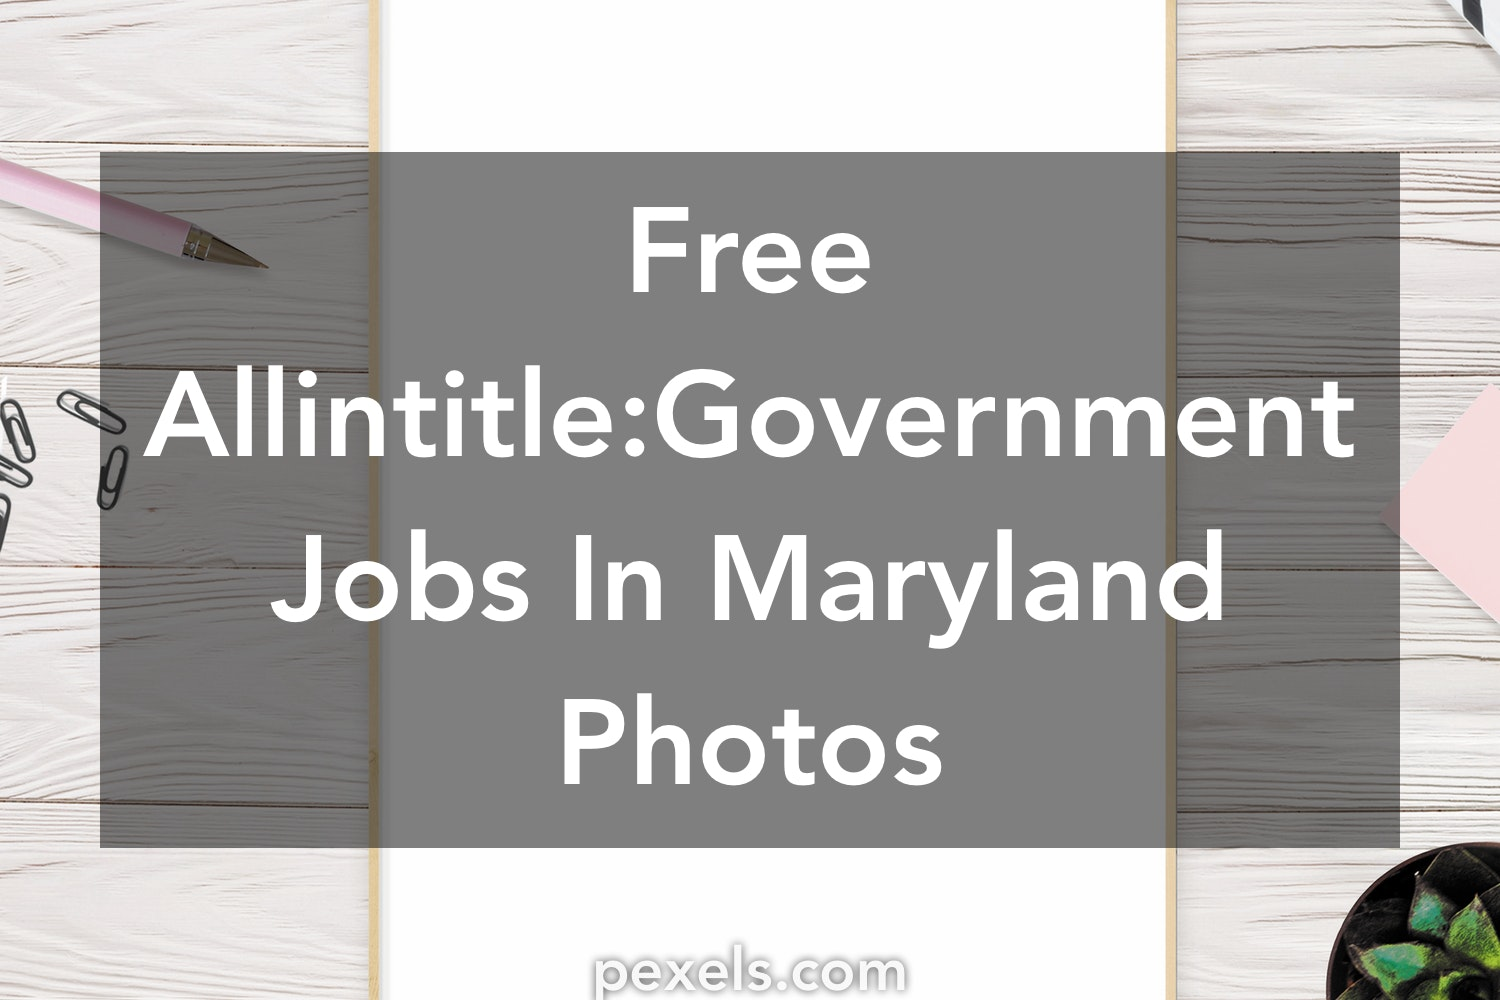 200 Great Allinle Government Jobs In Maryland Photos Pexels Free Stock